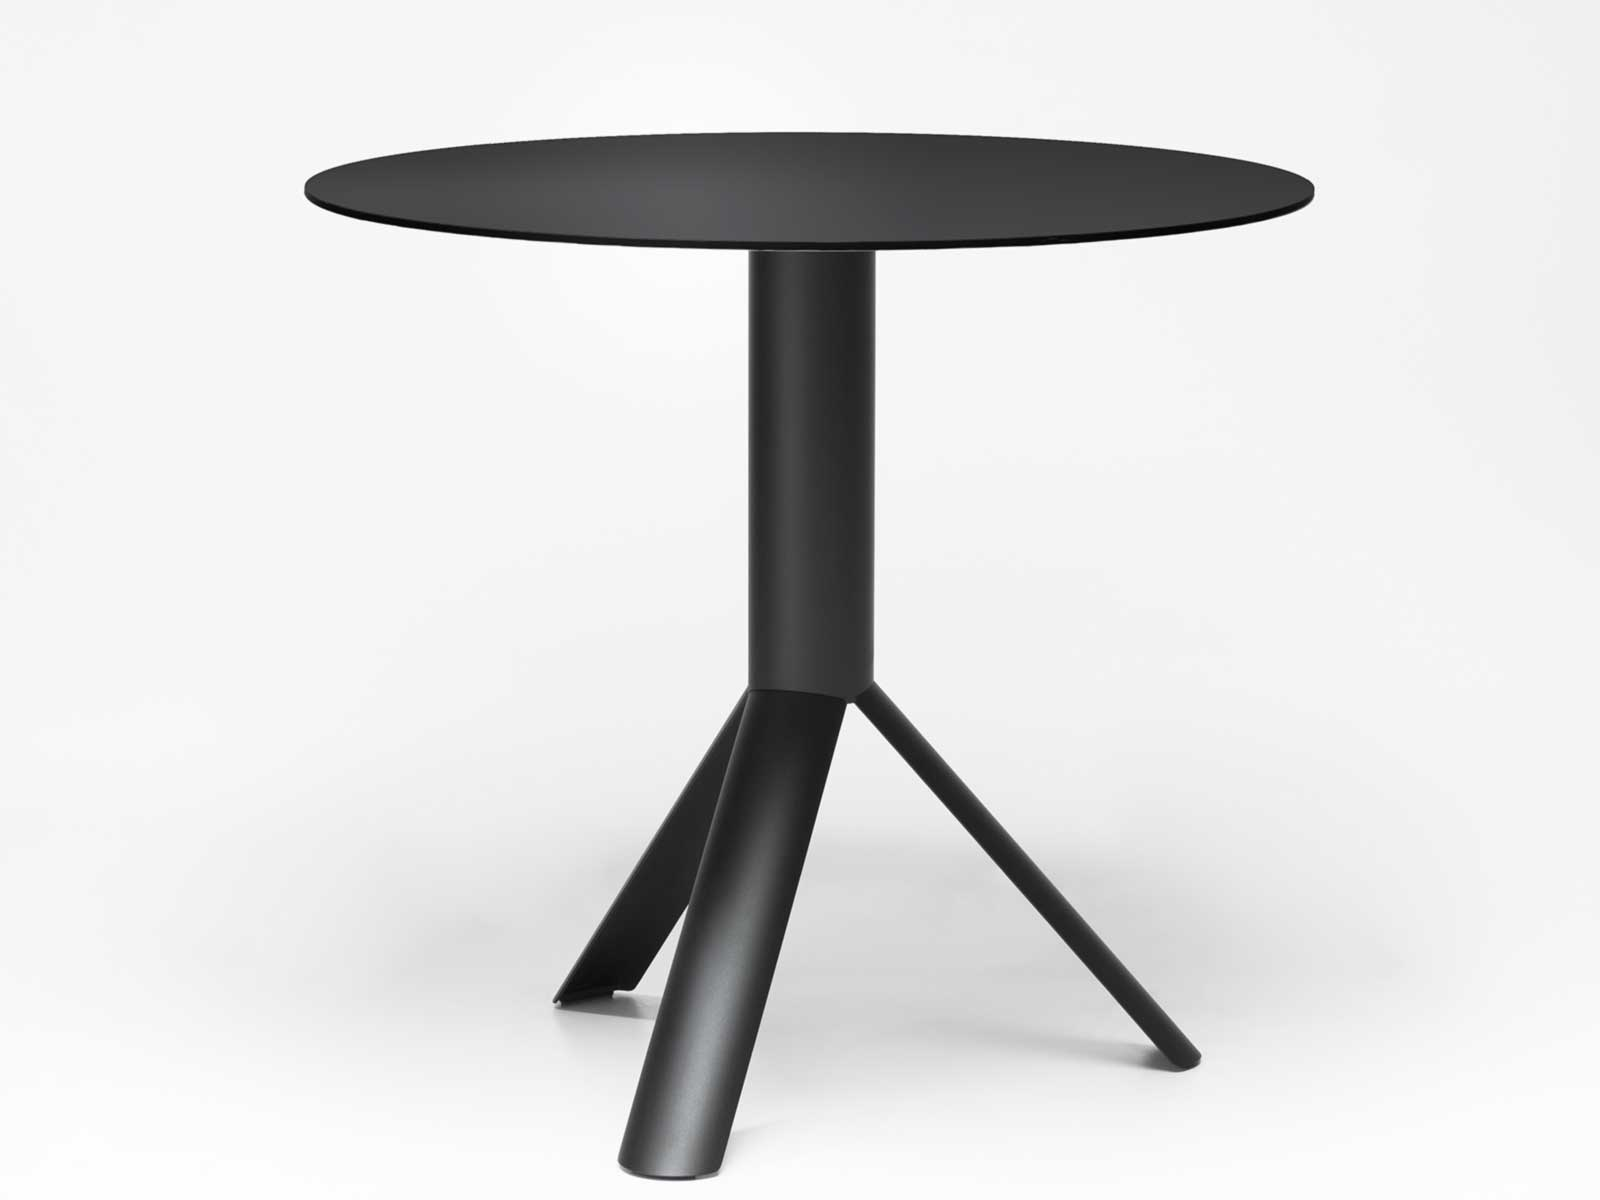 Tube bar table 110 cm height ntm nano top layer by fenix hometablesround tube bar table 110 cm height watchthetrailerfo